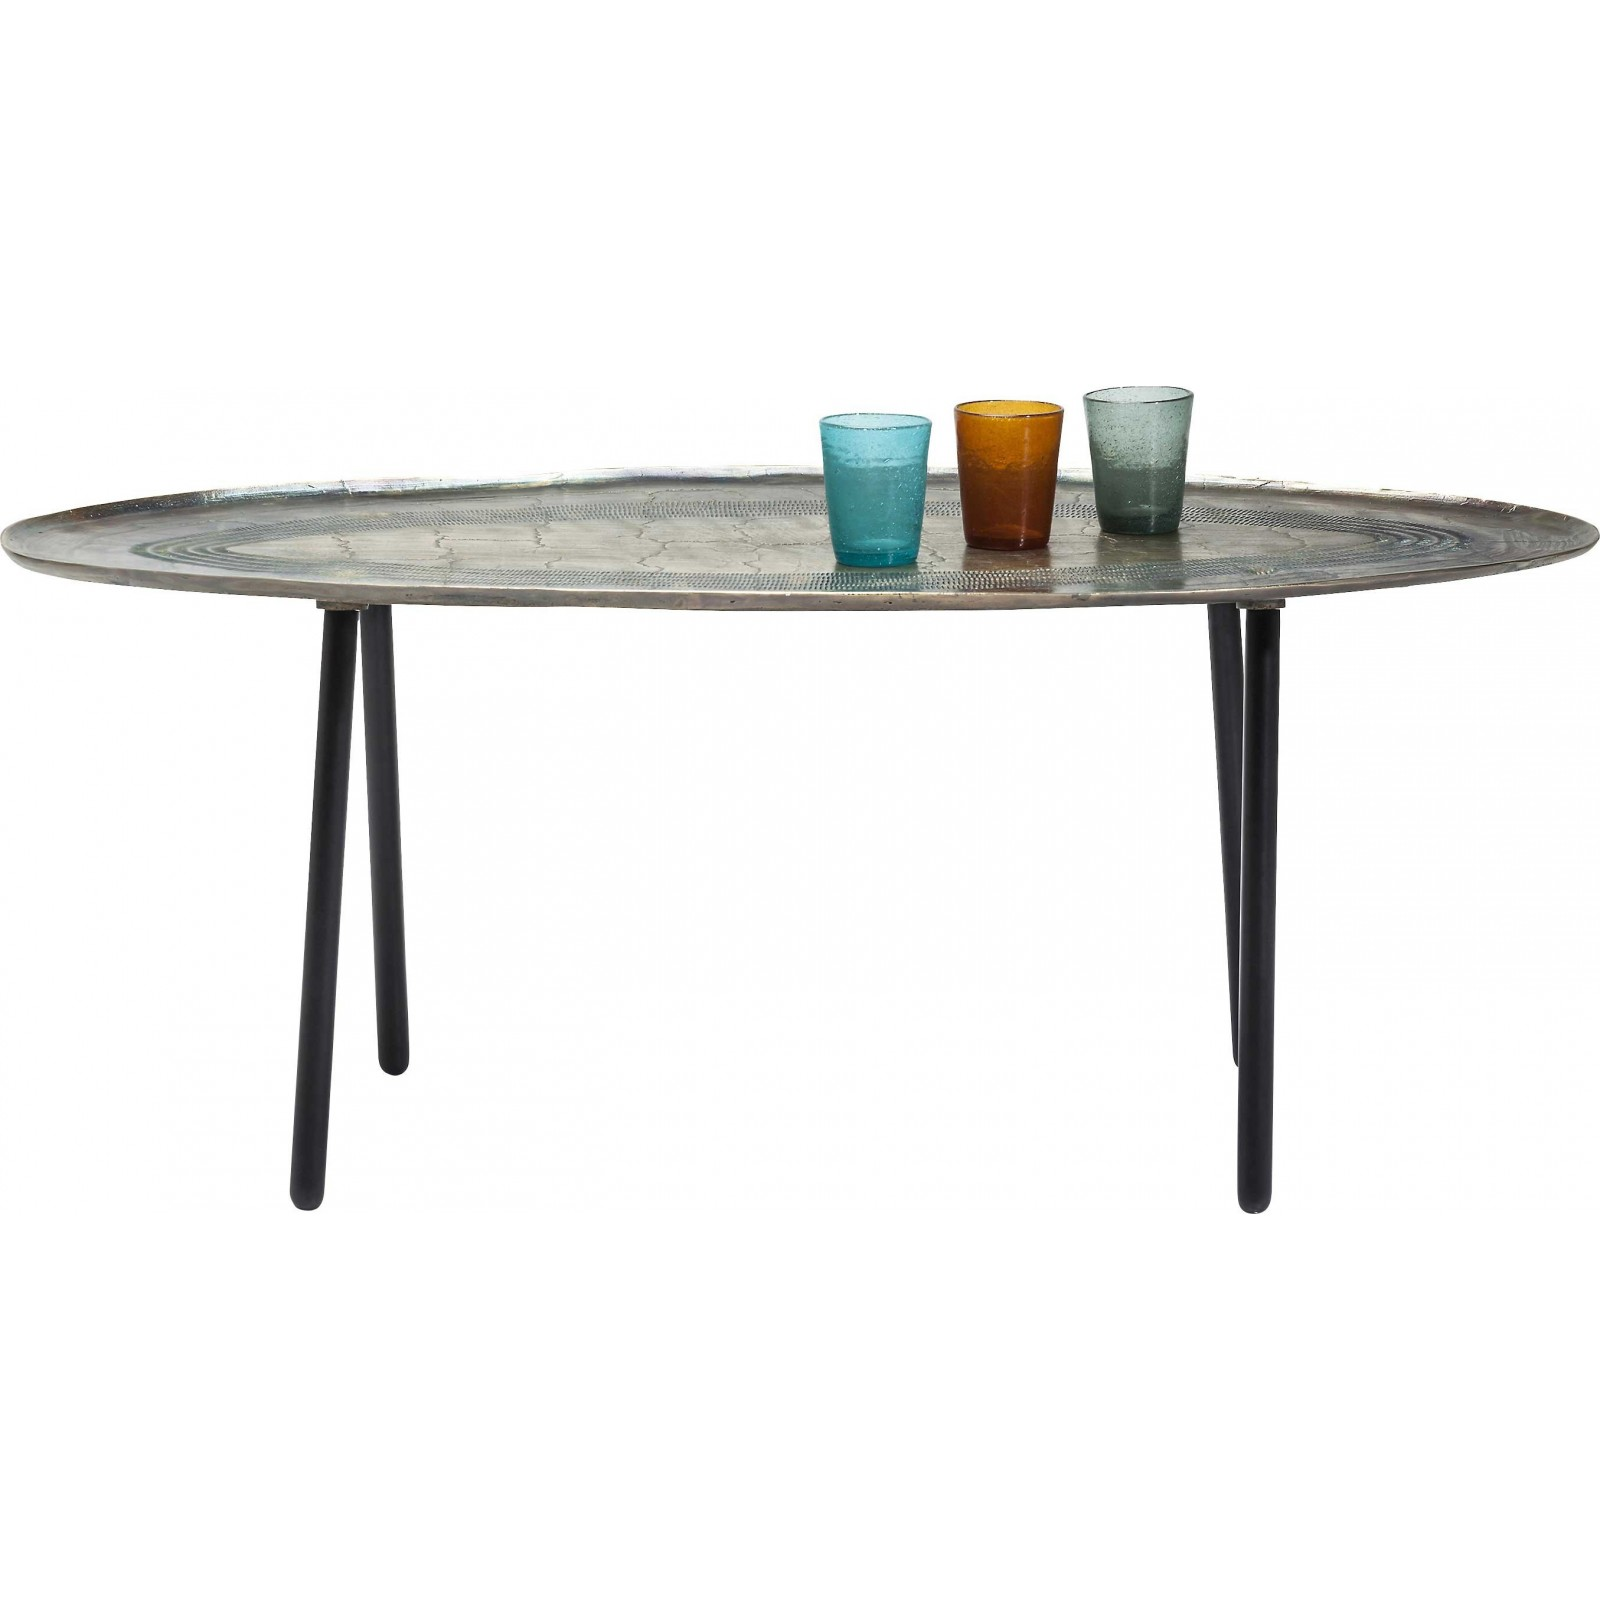 Table basse ovale el camino kare design - Table basse design ovale ...